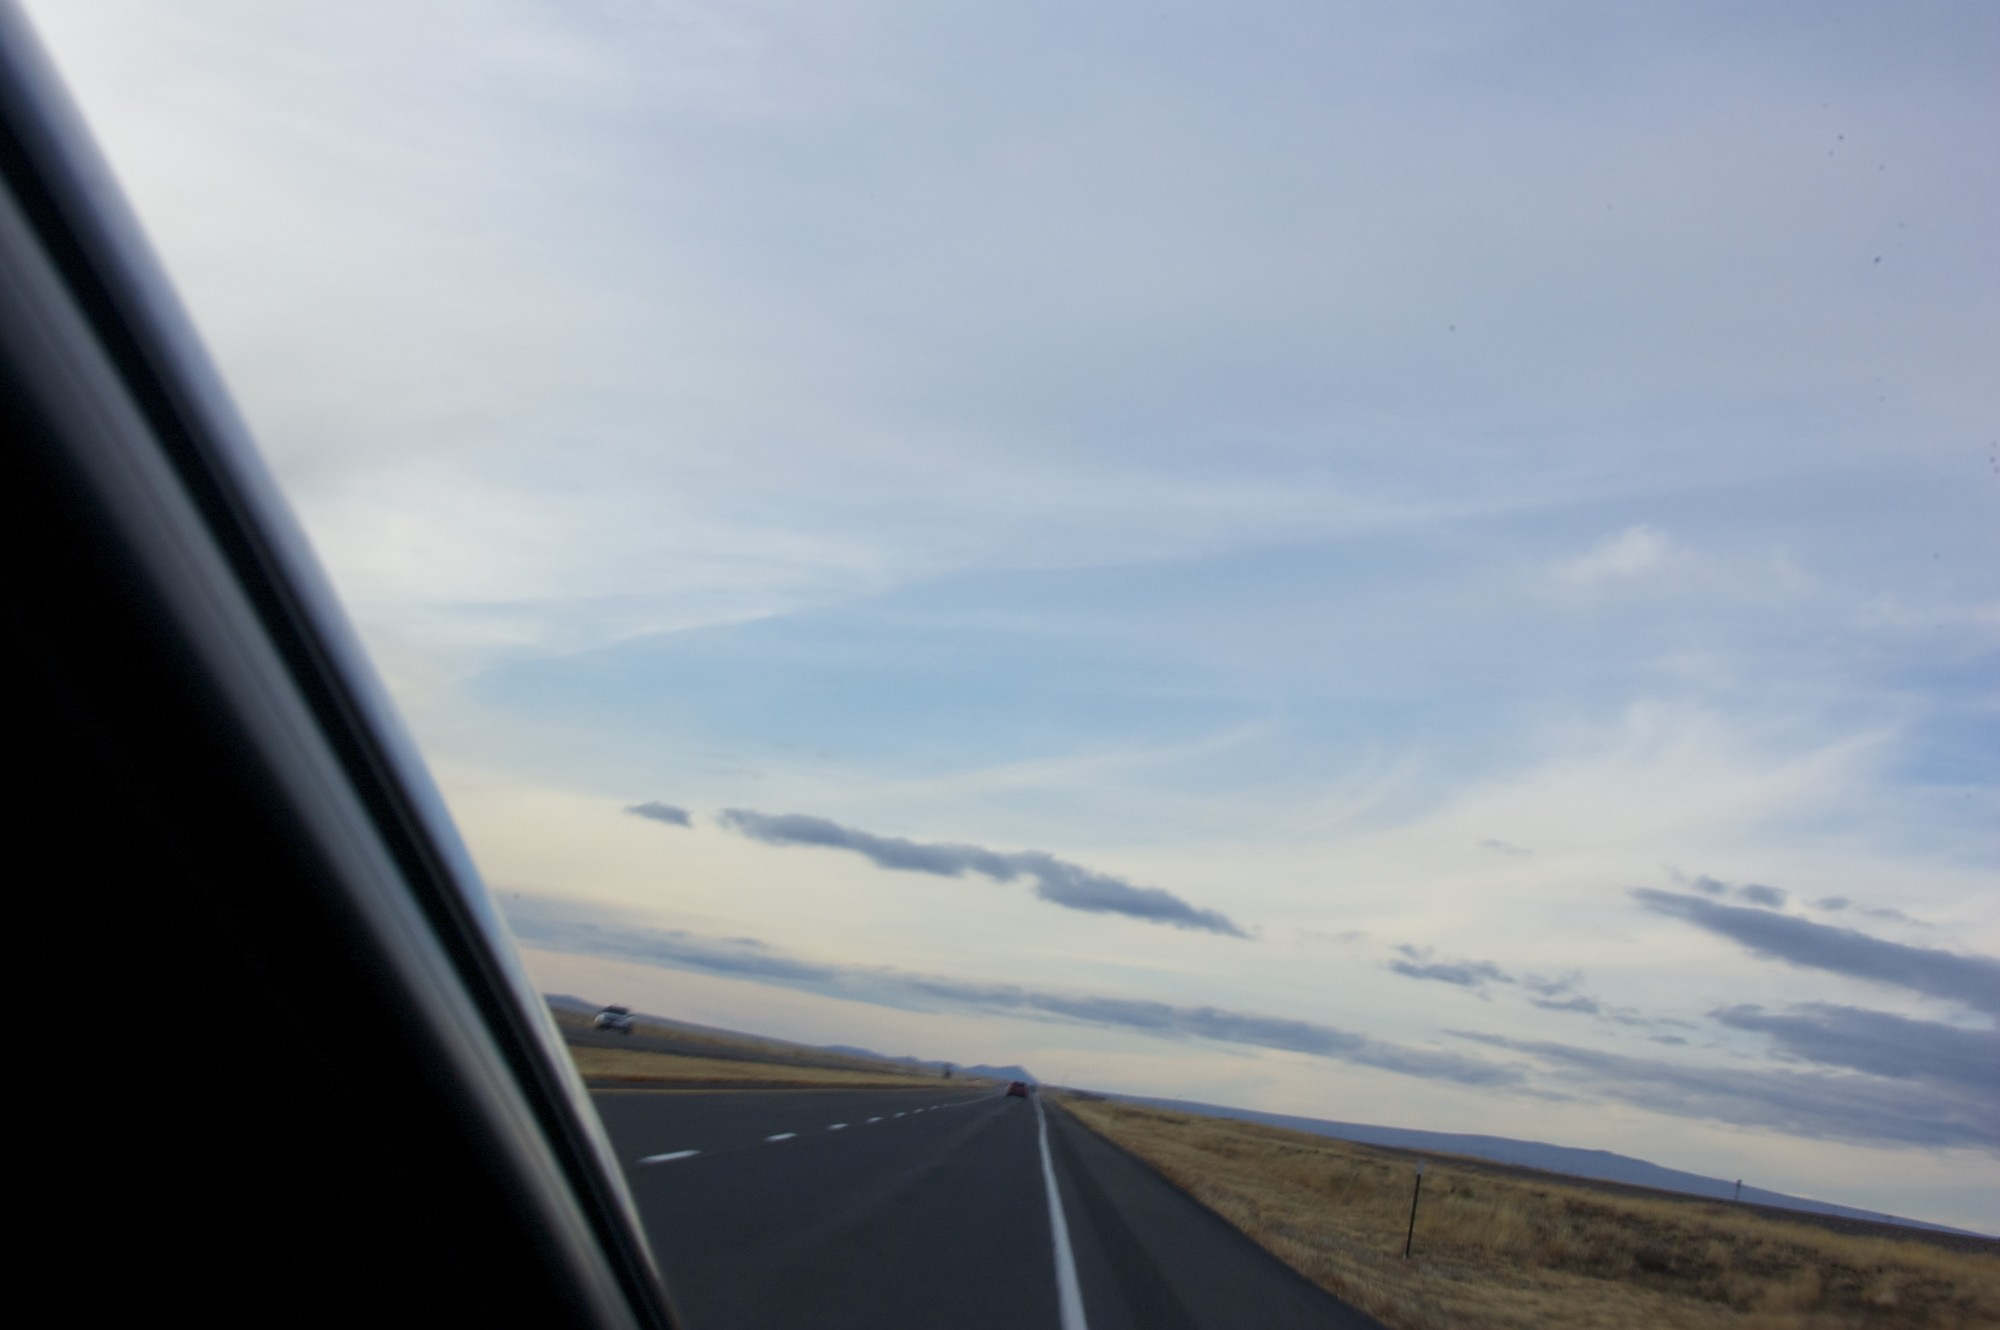 Driving down a northern New Mexico road